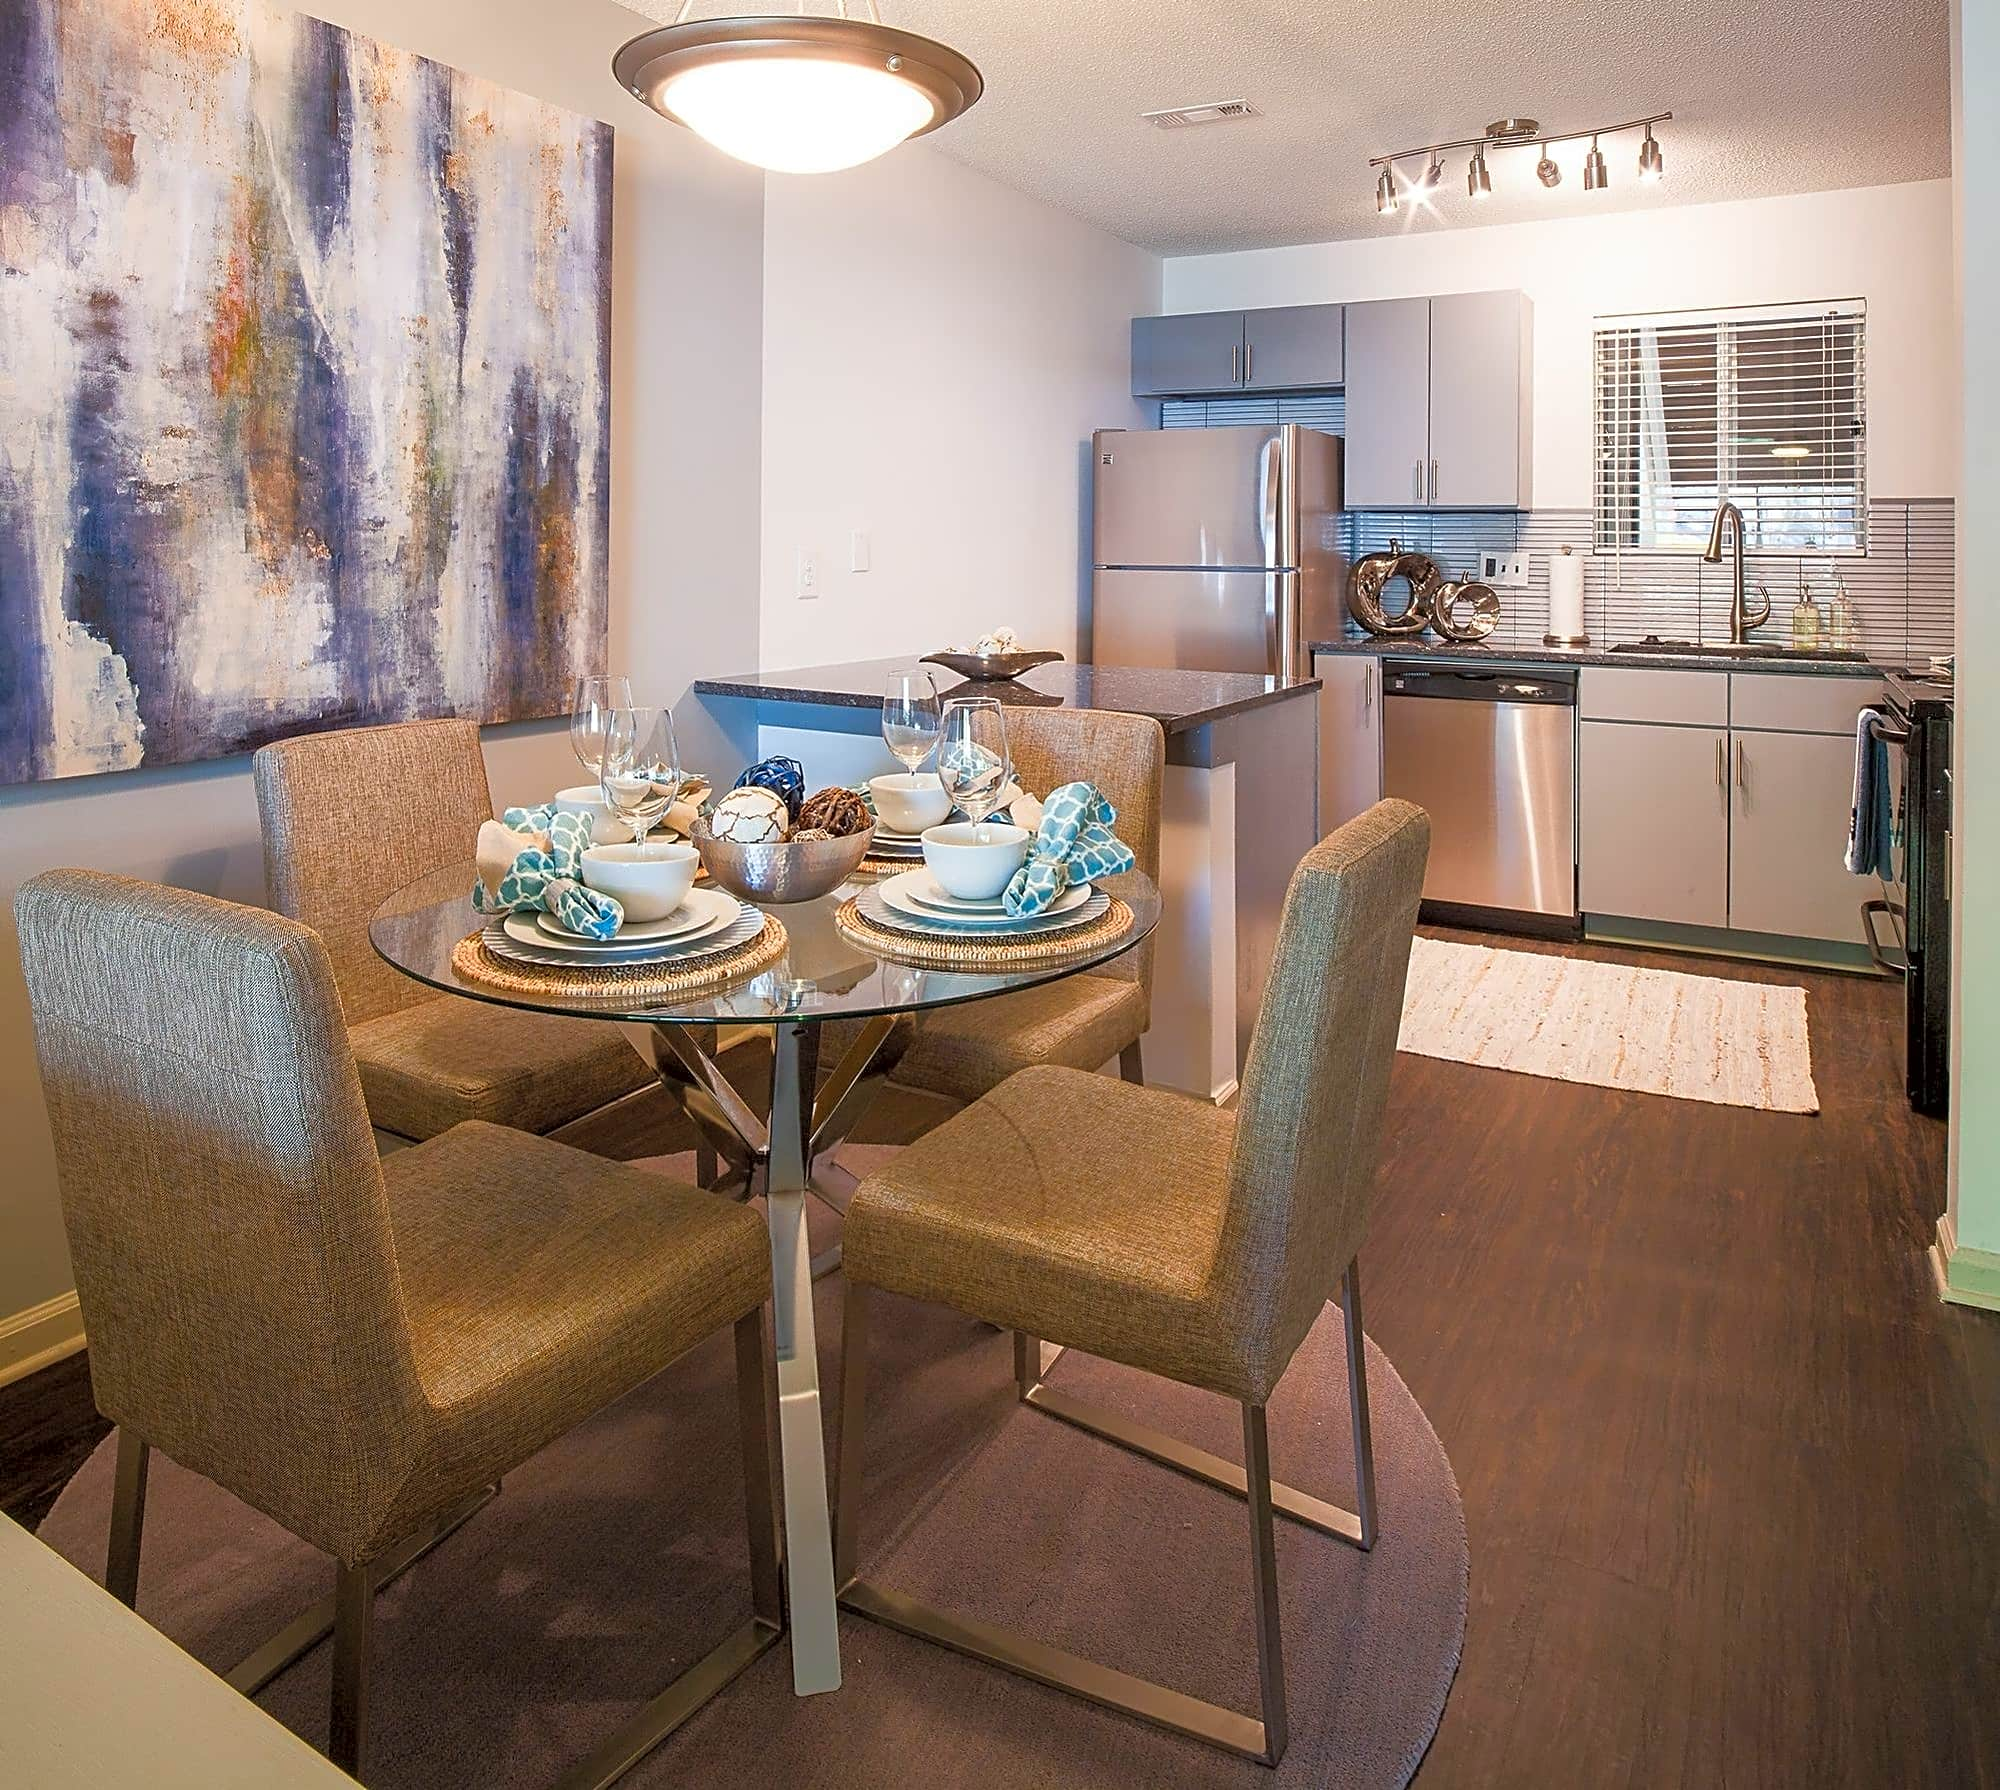 Brookstone Apartments Rock Hill Sc: The Regency By Cortland Apartments